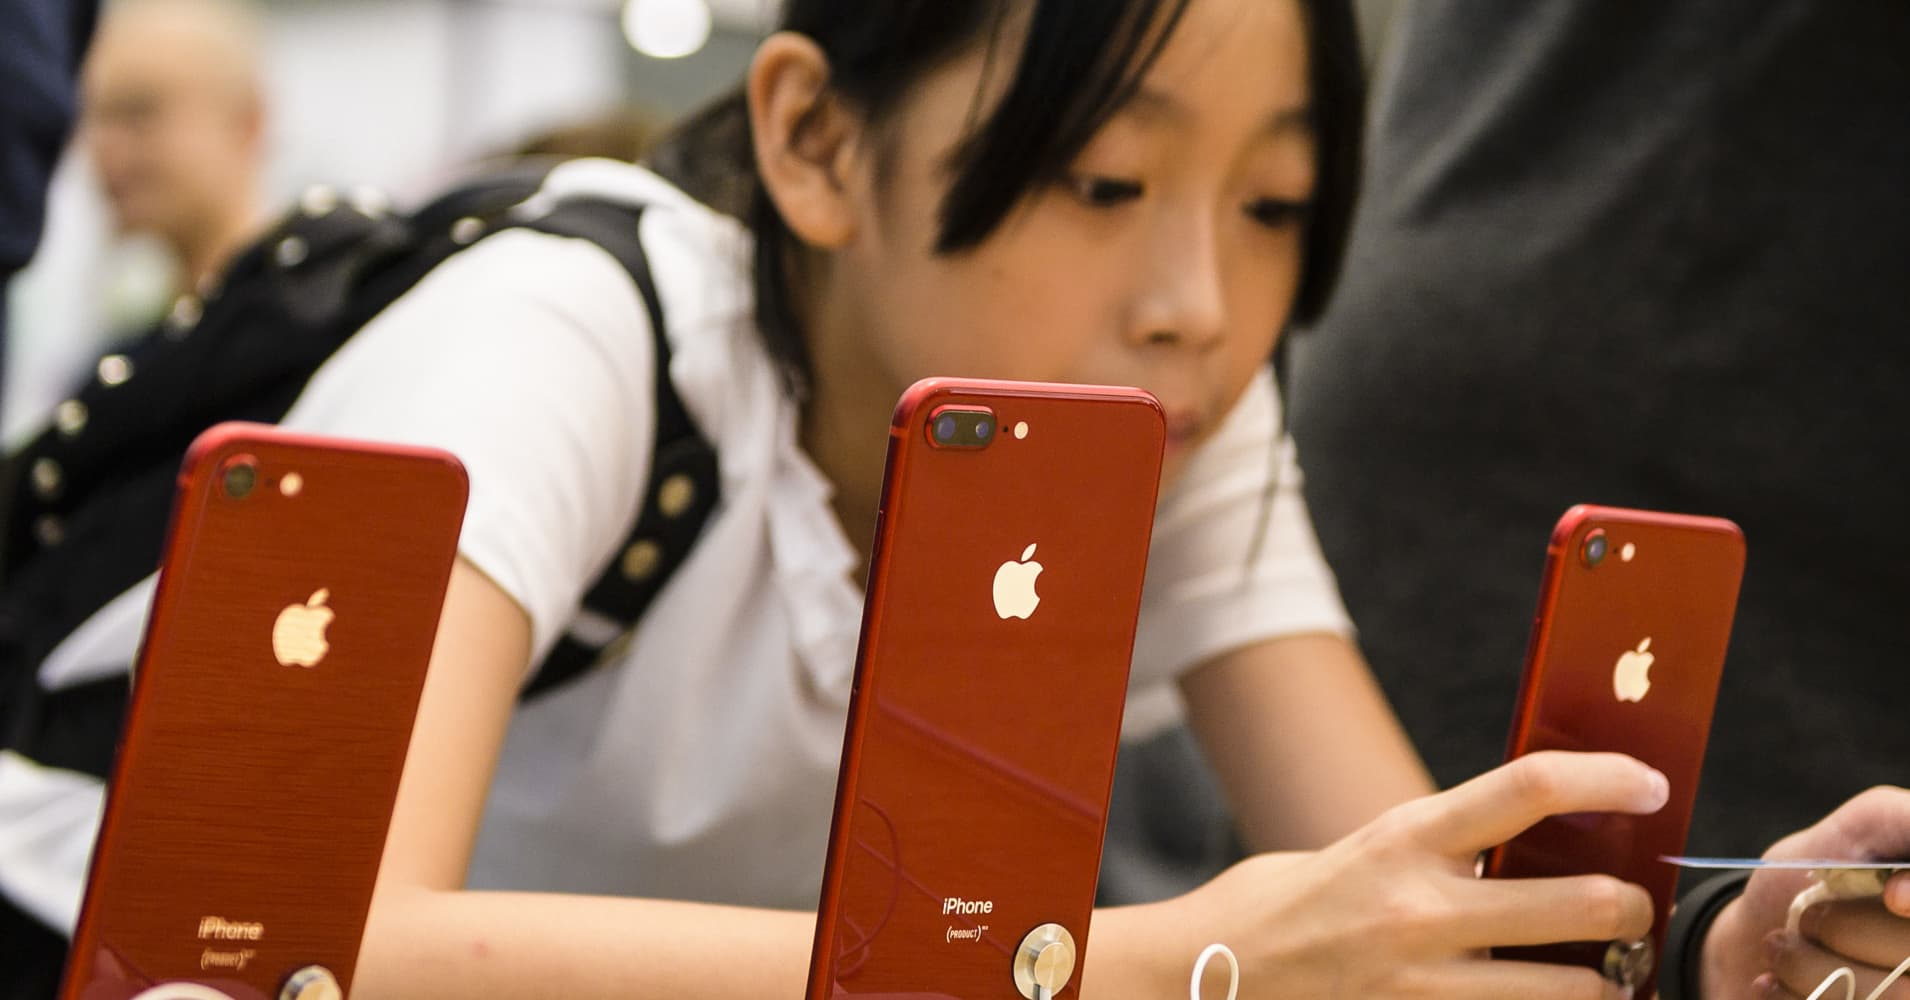 cnbc.com - Berkeley Lovelace Jr. - Cramer: Trump's new China tariffs signal the 'game is over' to Apple and other US companies